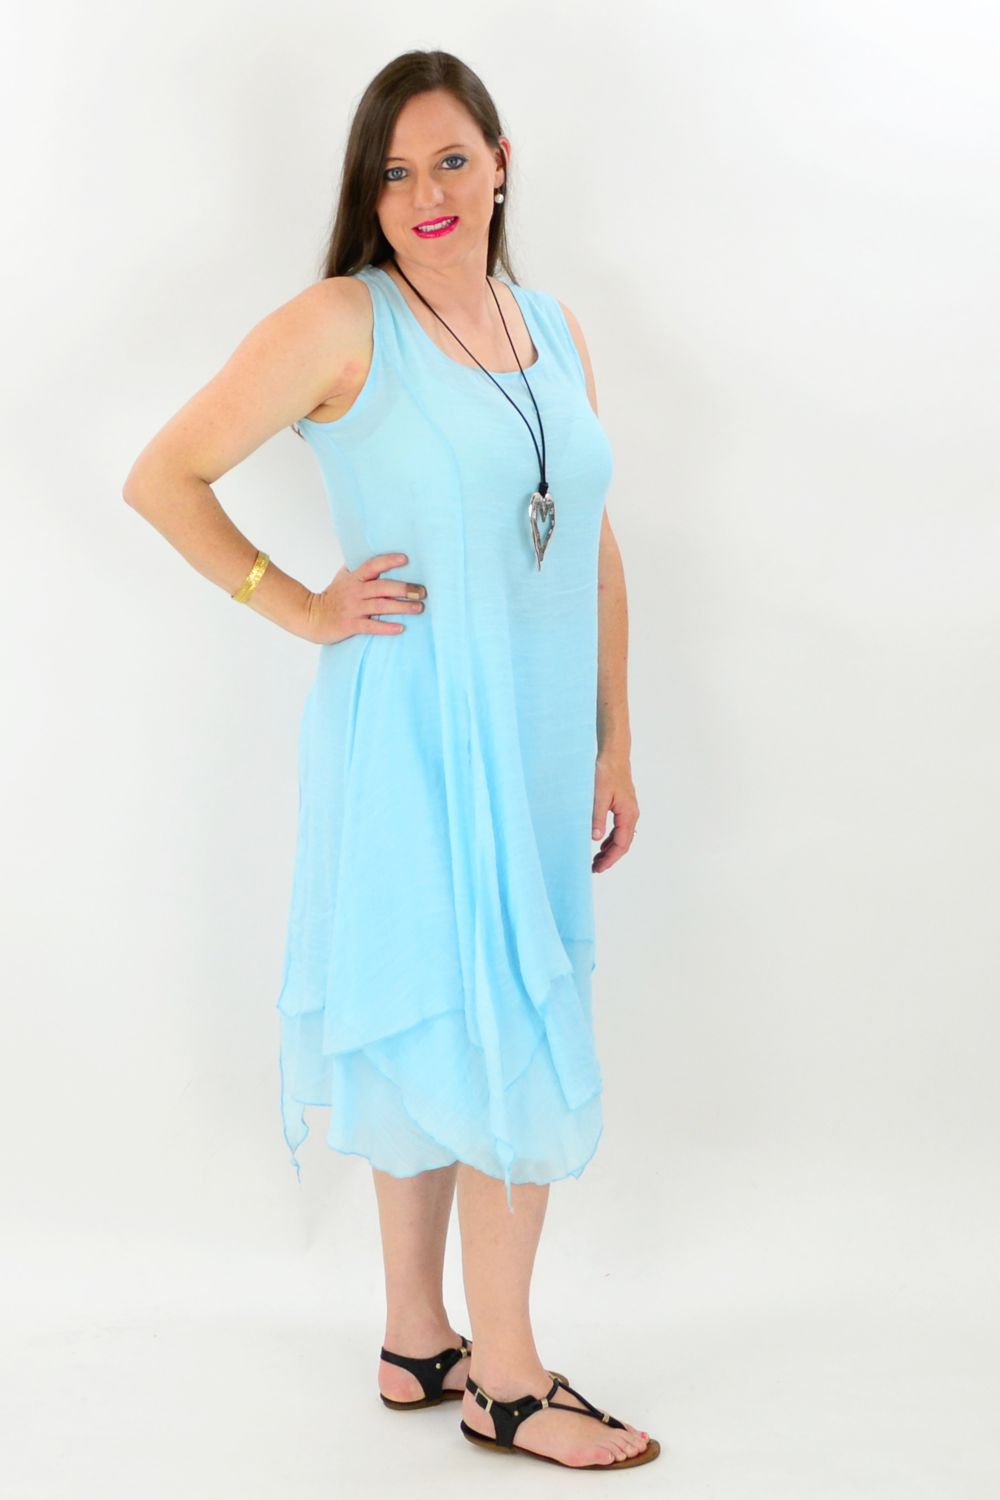 Sky Blue Maui Tunic Dress - at I Love Tunics @ www.ilovetunics.com = Number One! Tunics Destination